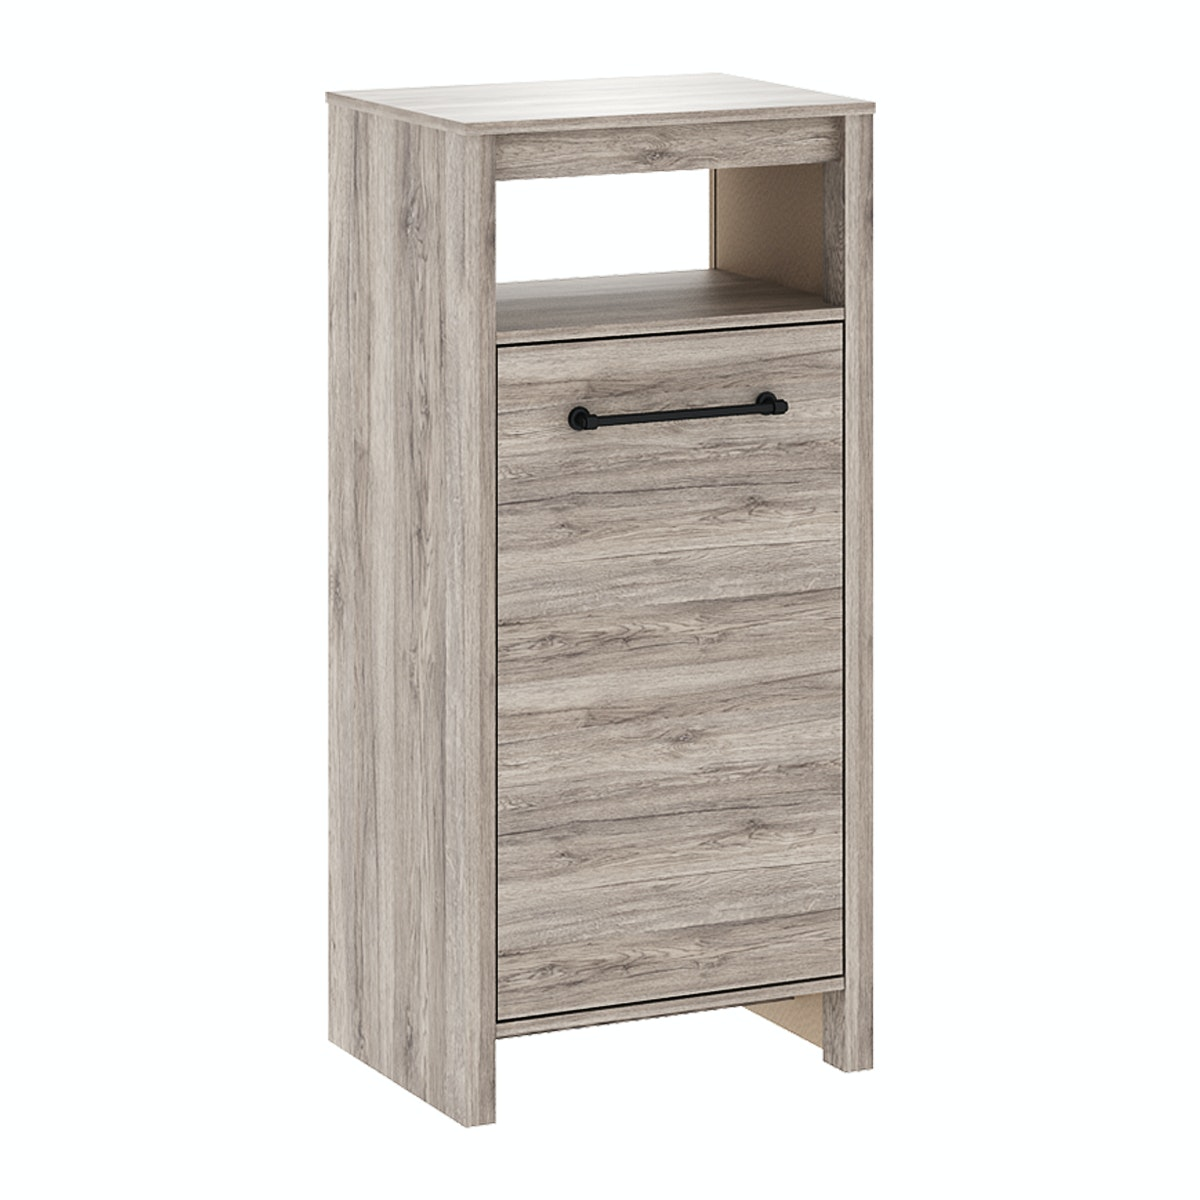 Pro Design Romanov Linen Kabinet - Sanremo Dark - Beige Leather